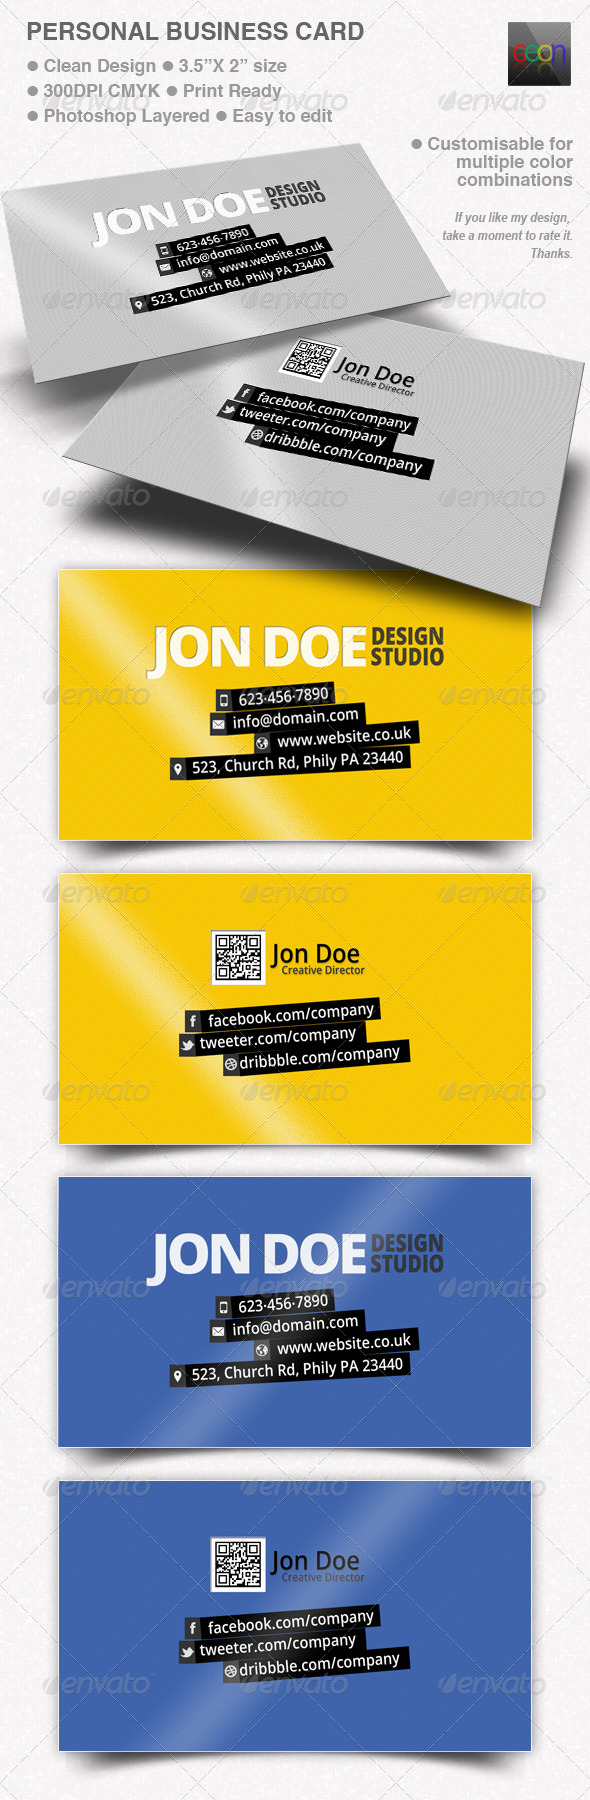 Personal Business Card - Black & Grey - Corporate Business Cards